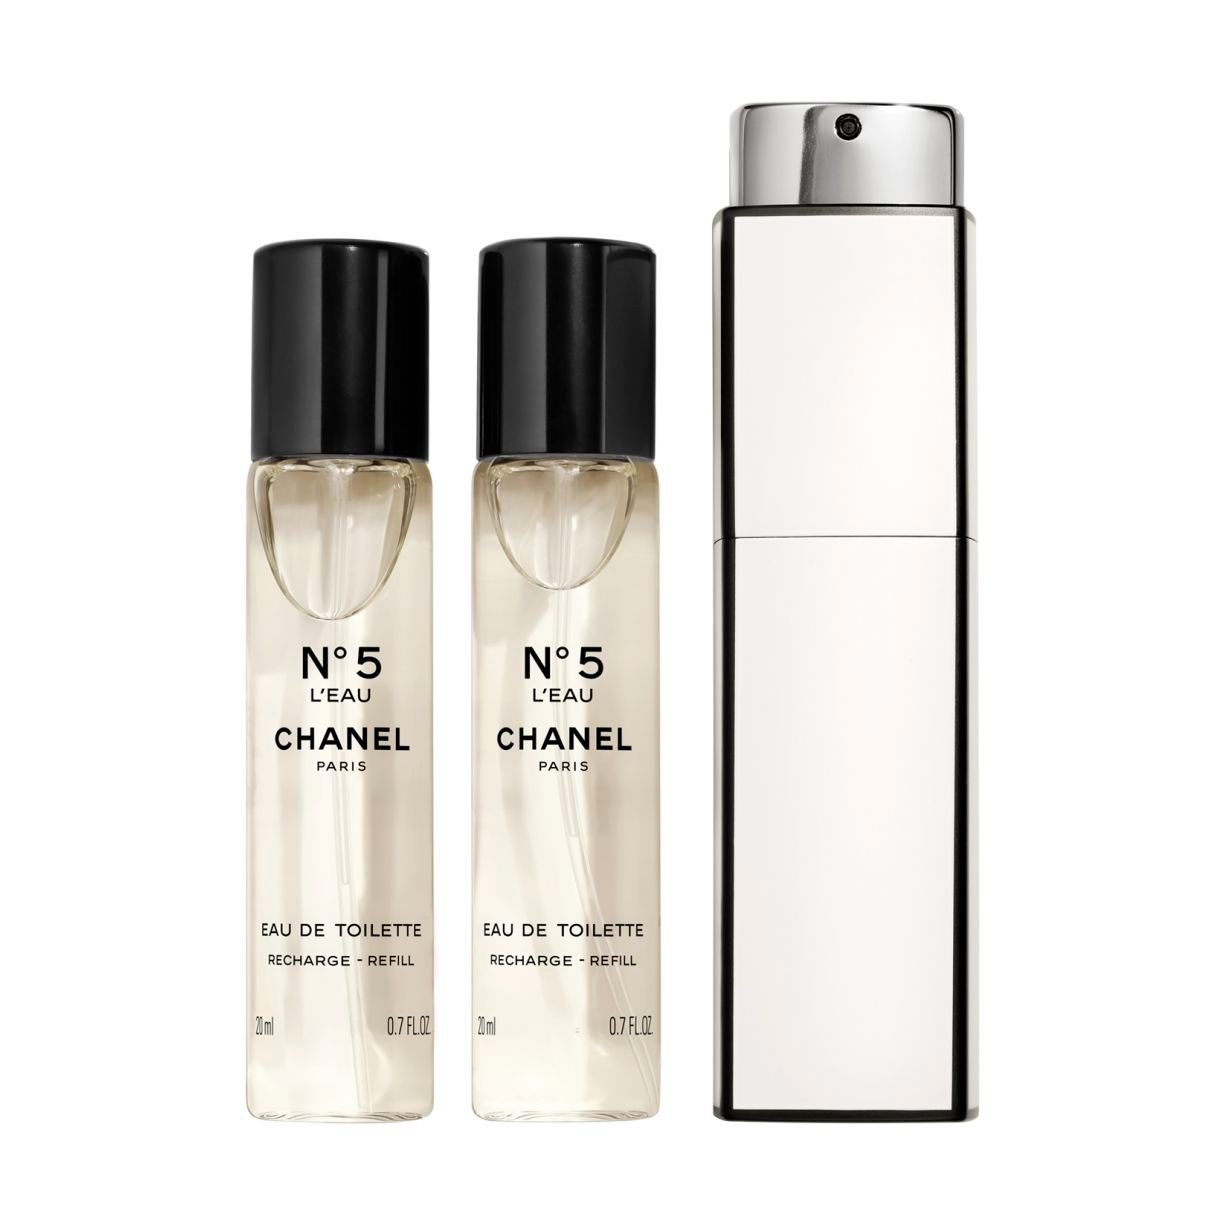 N°5 L'EAU EAU DE TOILETTE TWIST & SPRAY 3 x 20ml